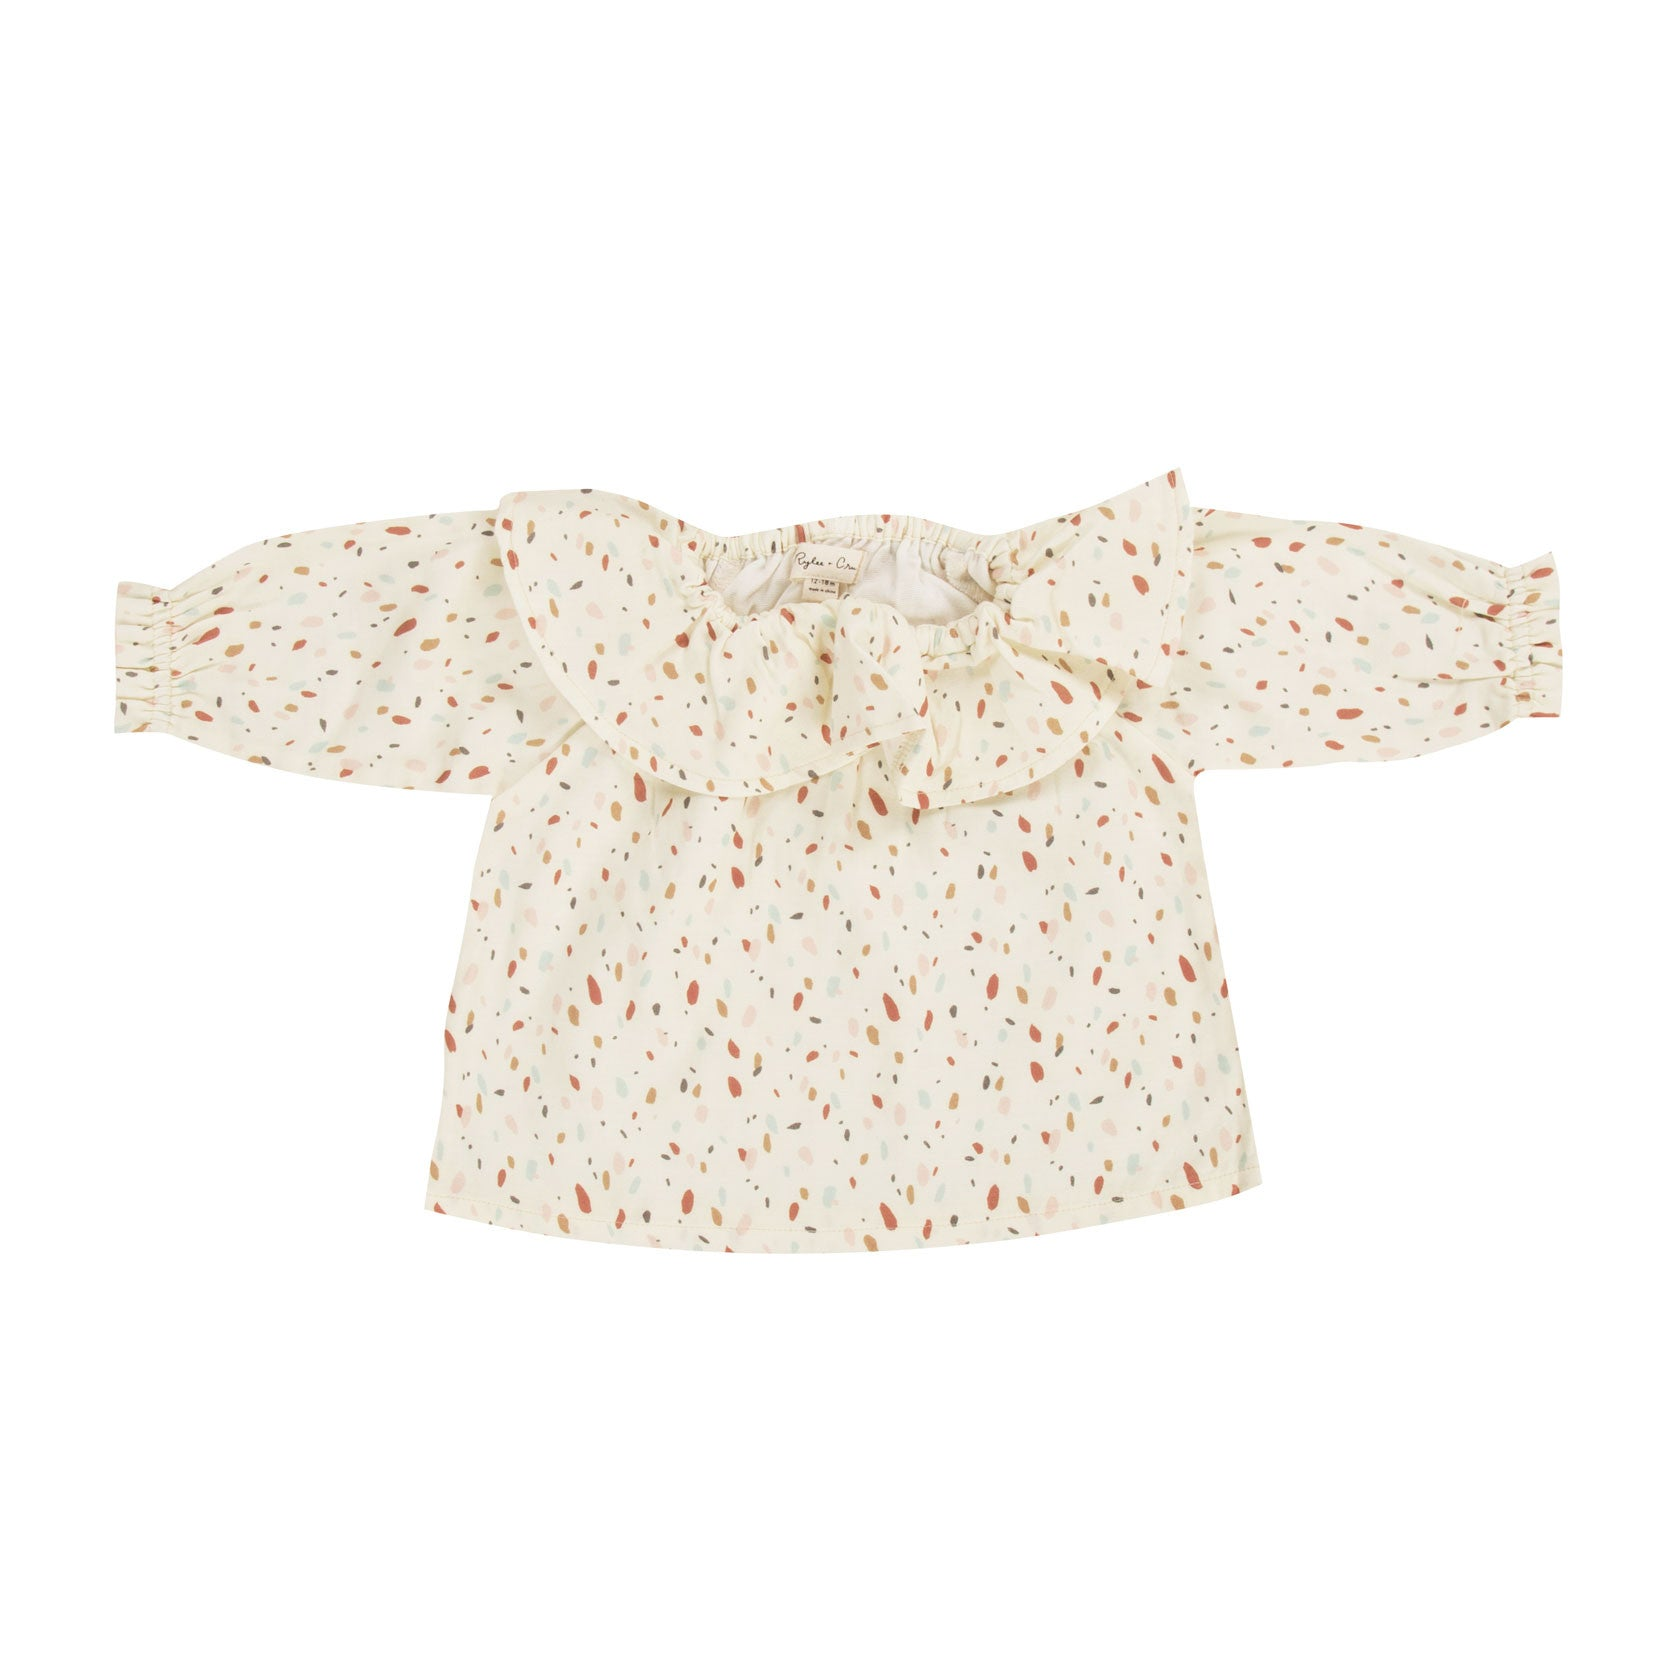 Rylee and Cru Confetti Collar Blouse - Ladida